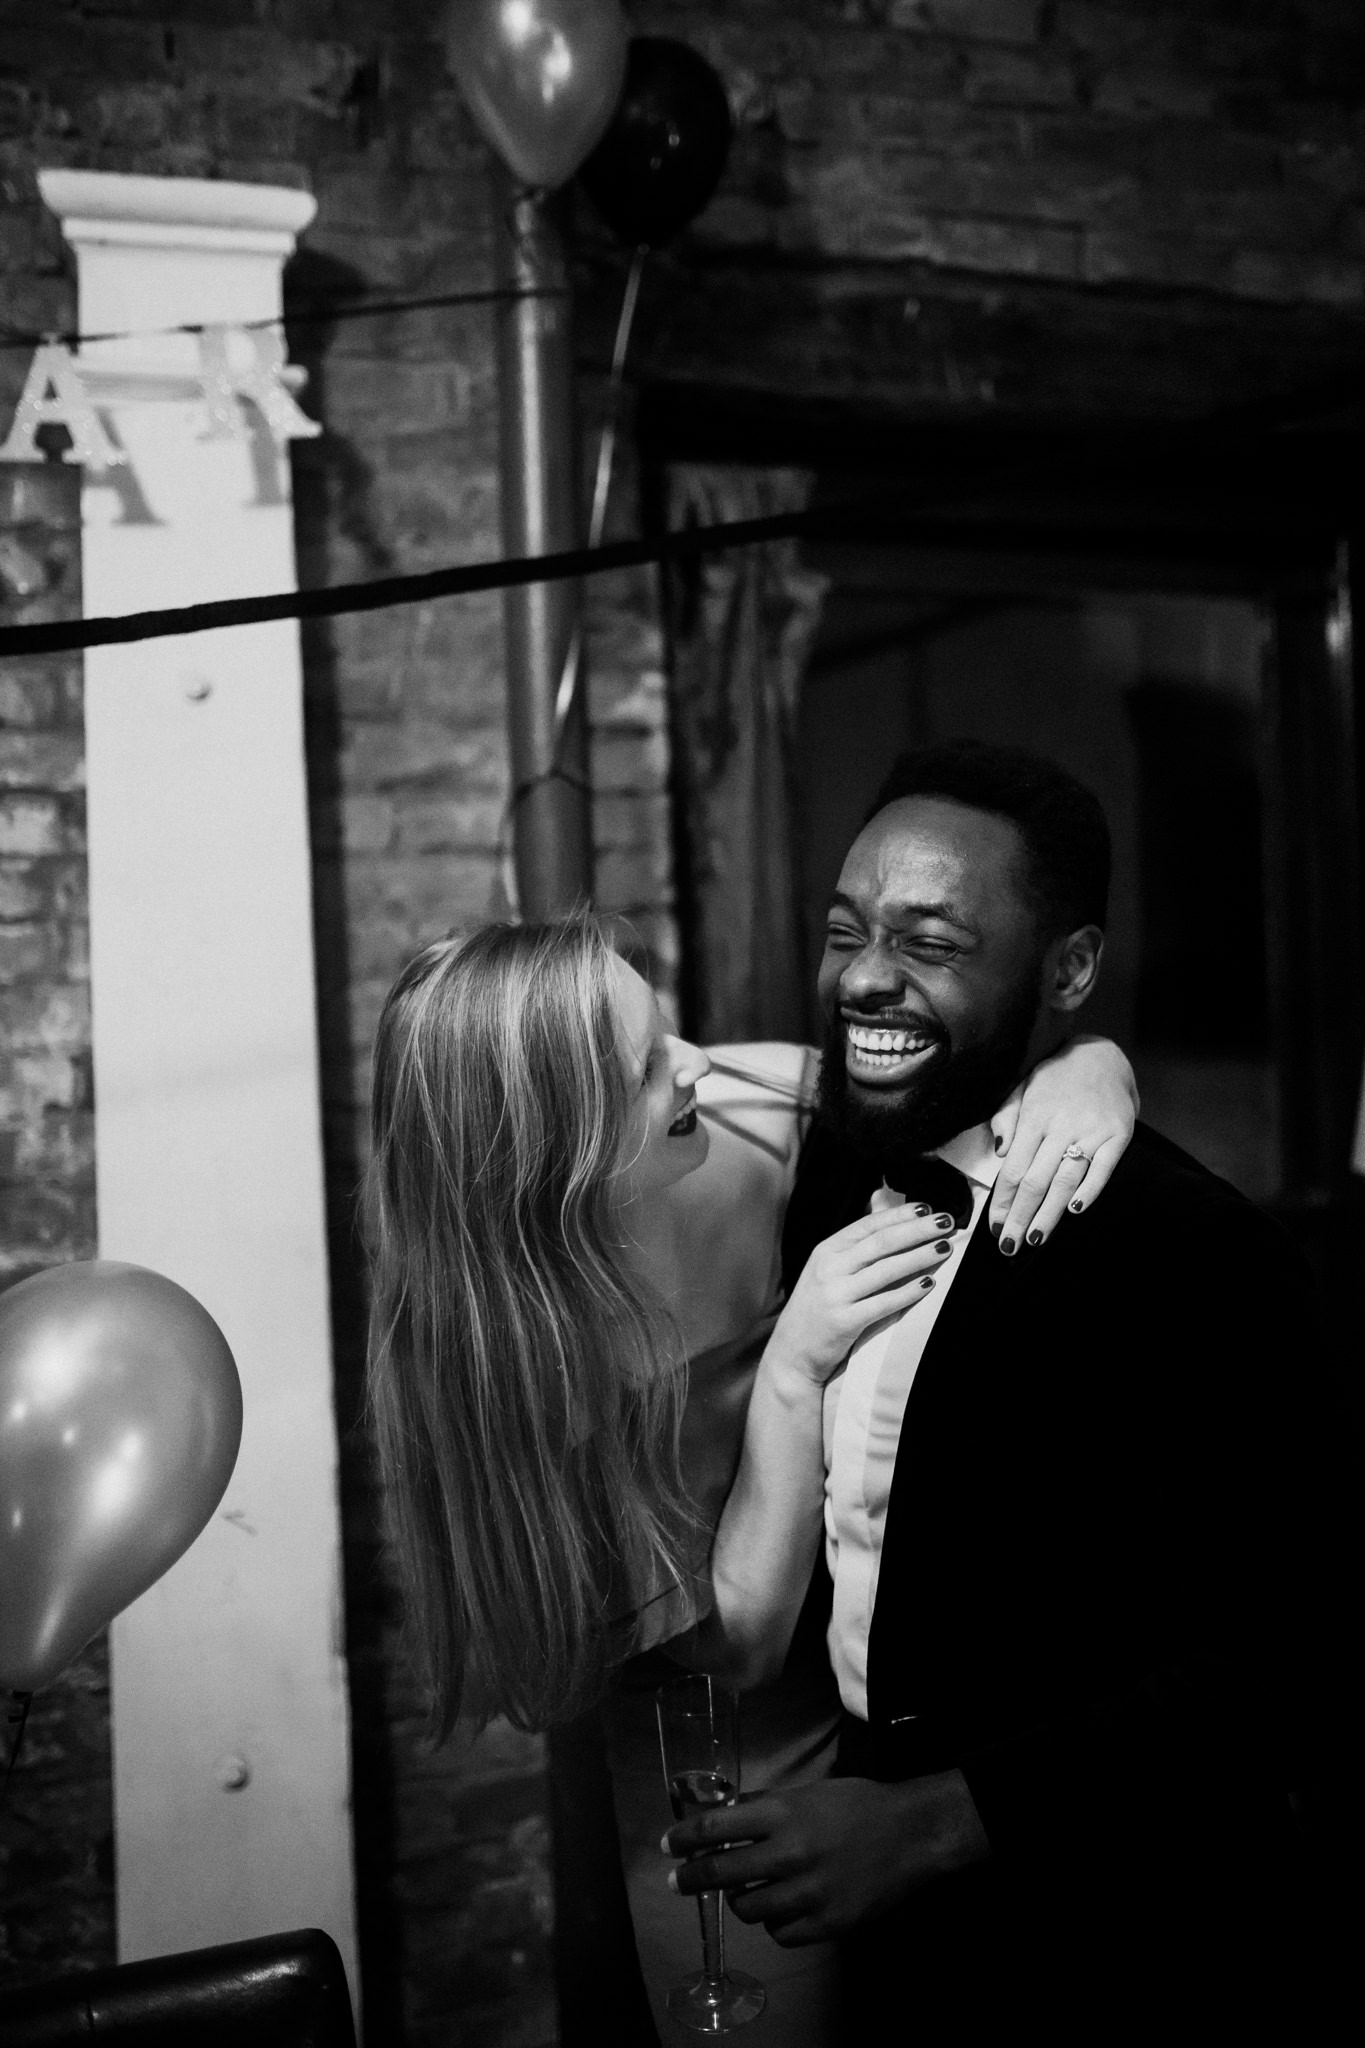 memphis-engagement-photographer-new-years-eve-proposal-cassie-cook-photography-52.jpg